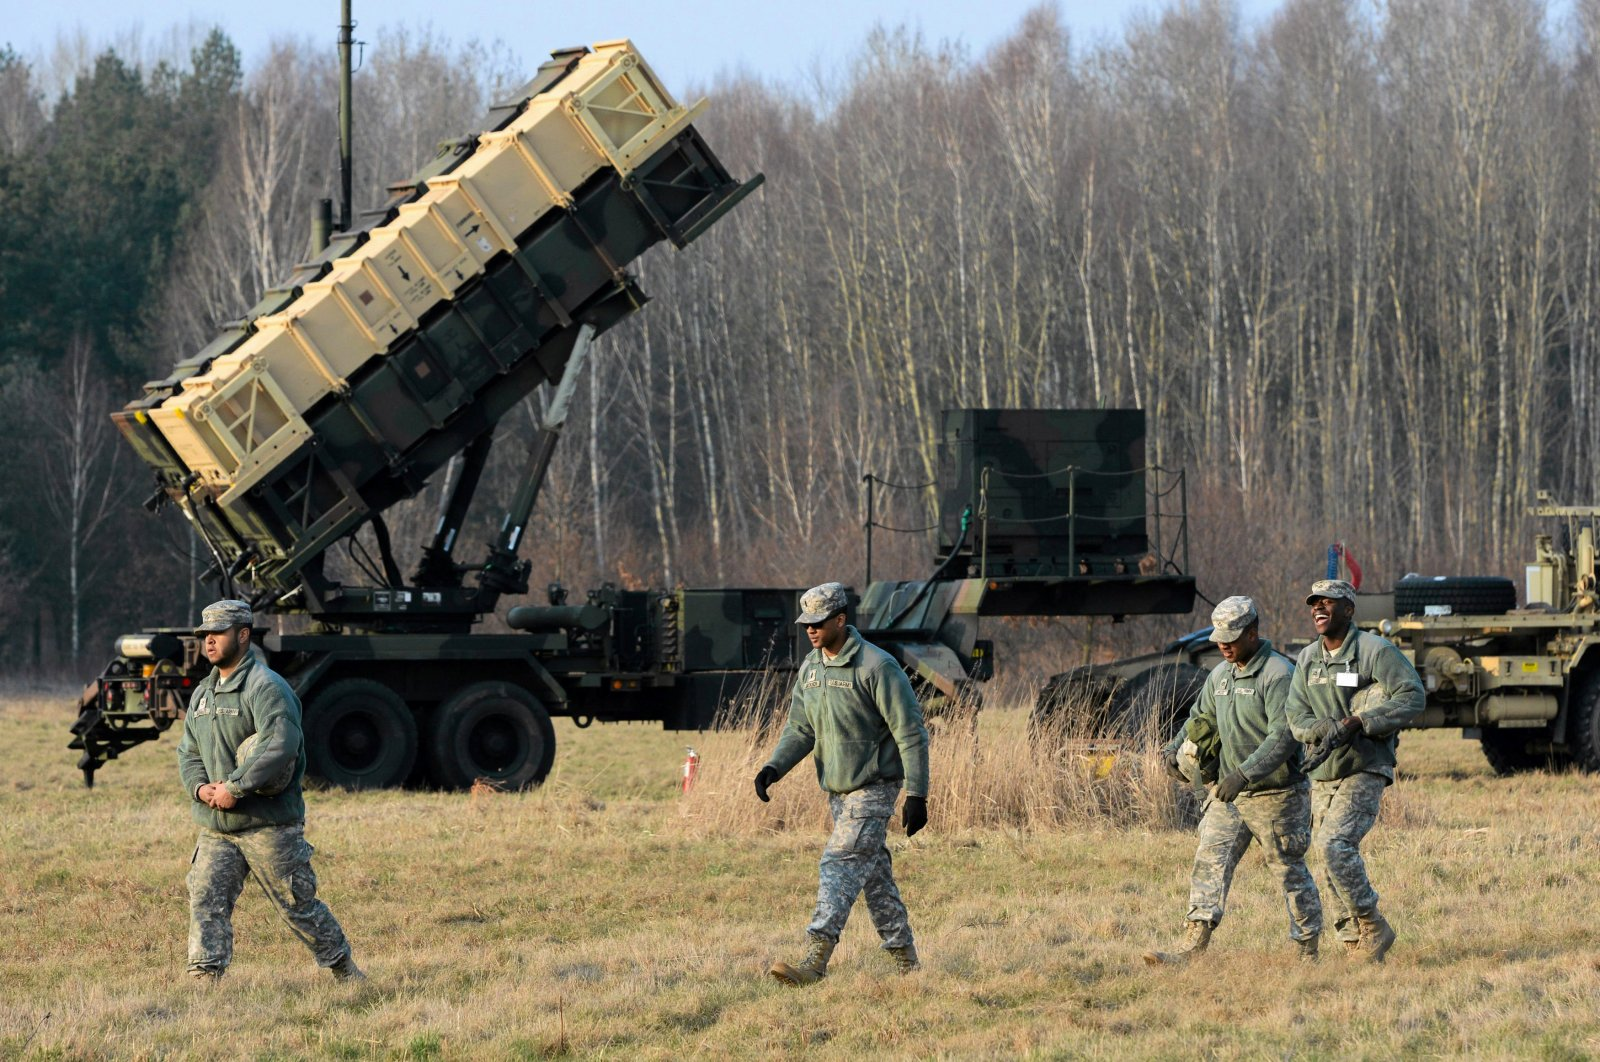 U.S. soldiers walk next to a Patriot missile defense battery during join exercises at the military grouds in Sochaczew, near Warsaw, March 21, 2015. (Reuters Photo)